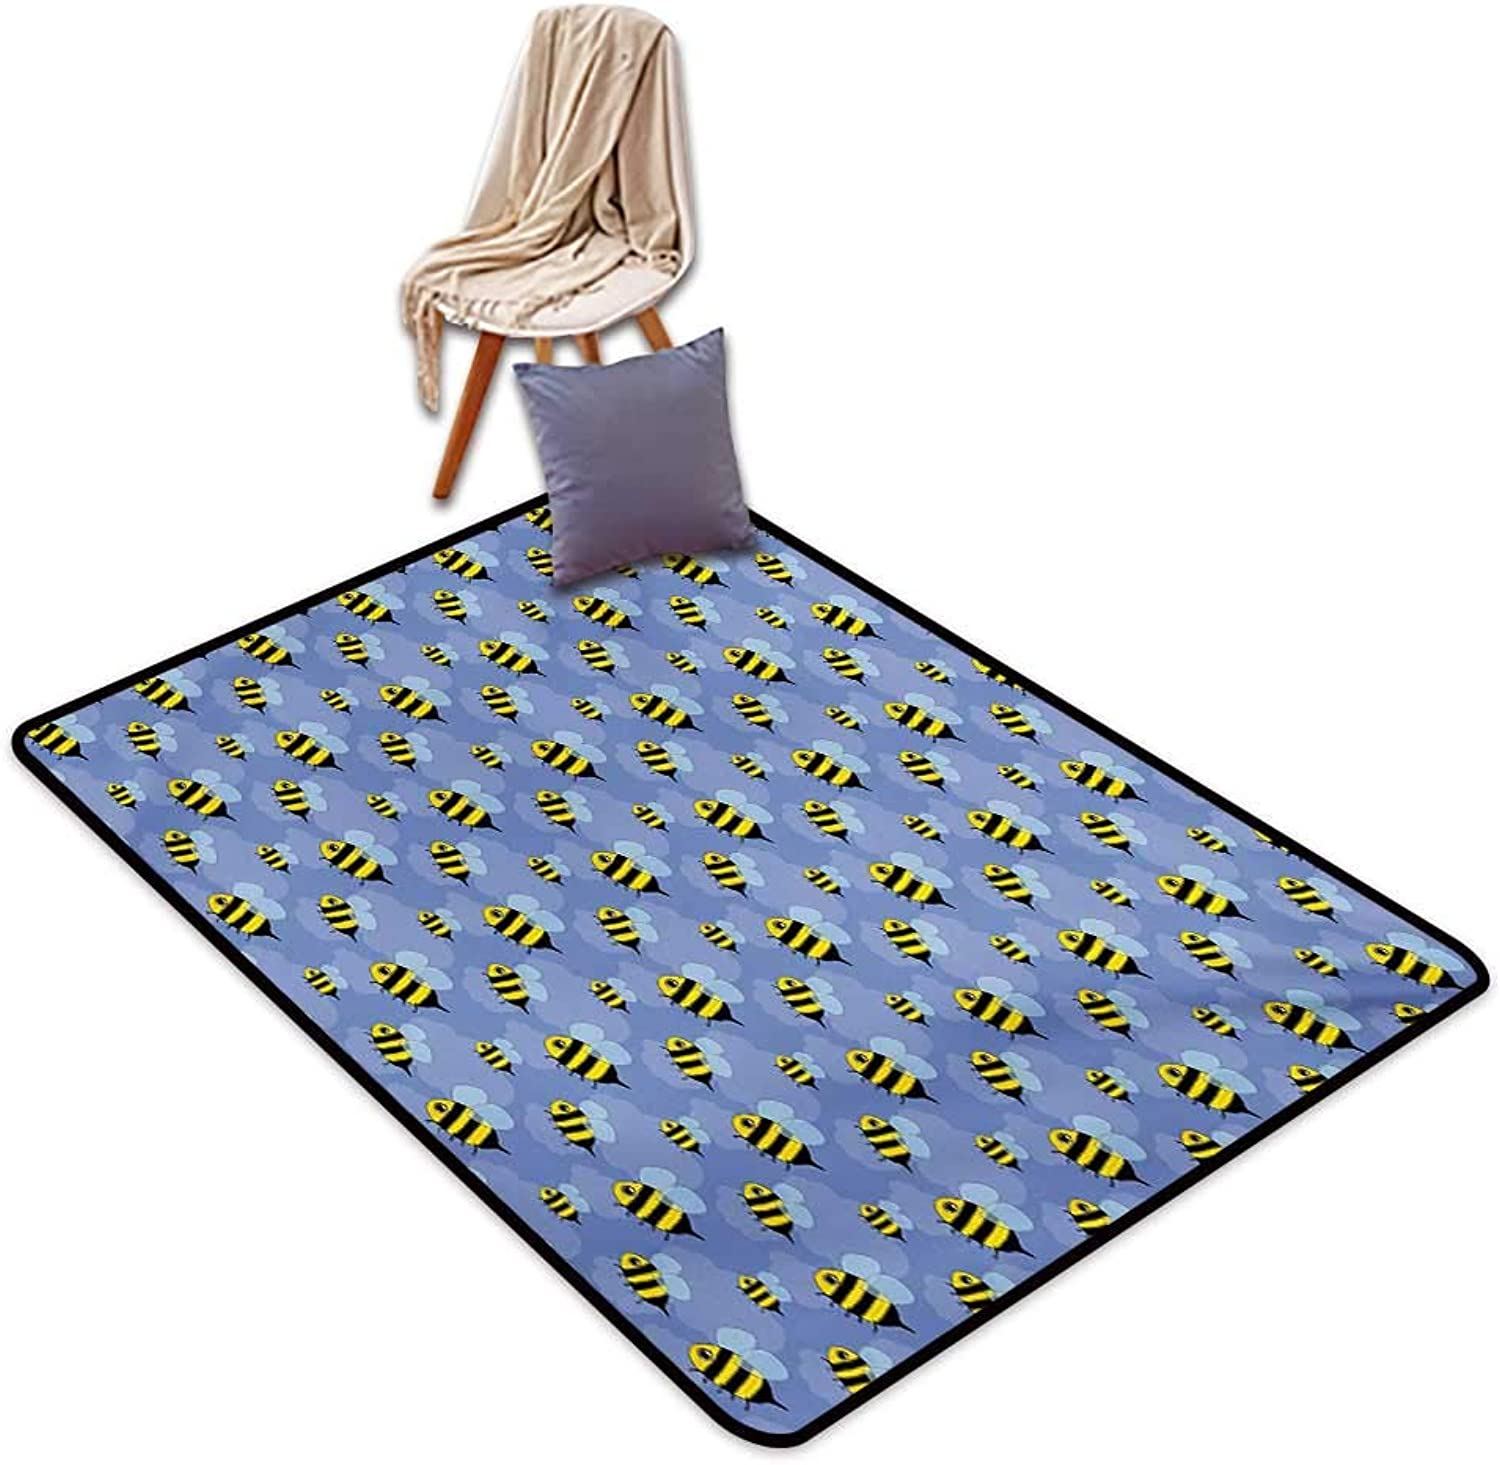 Bees Large Outdoor Indoor Rubber Doormat Spring Avian Bugs Insects Flying Among The Clouds Cartoon Design Water Absorption, Anti-Skid and Oil Proof 48  Wx59 L purple bluee Yellow and Black